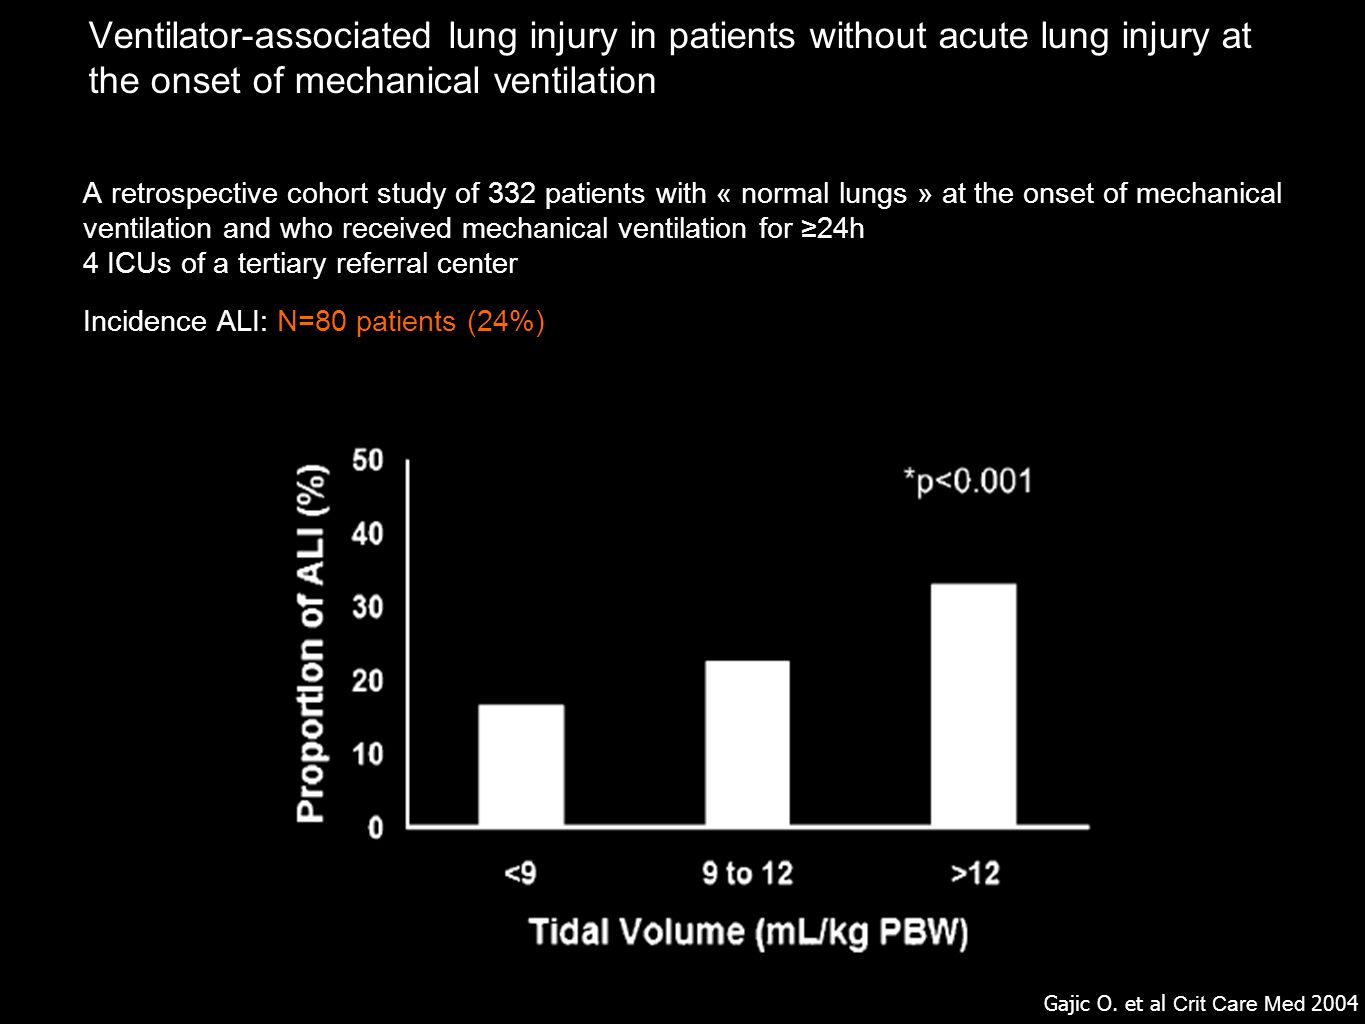 Ventilator-associated lung injury in patients without acute lung injury at the onset of mechanical ventilation